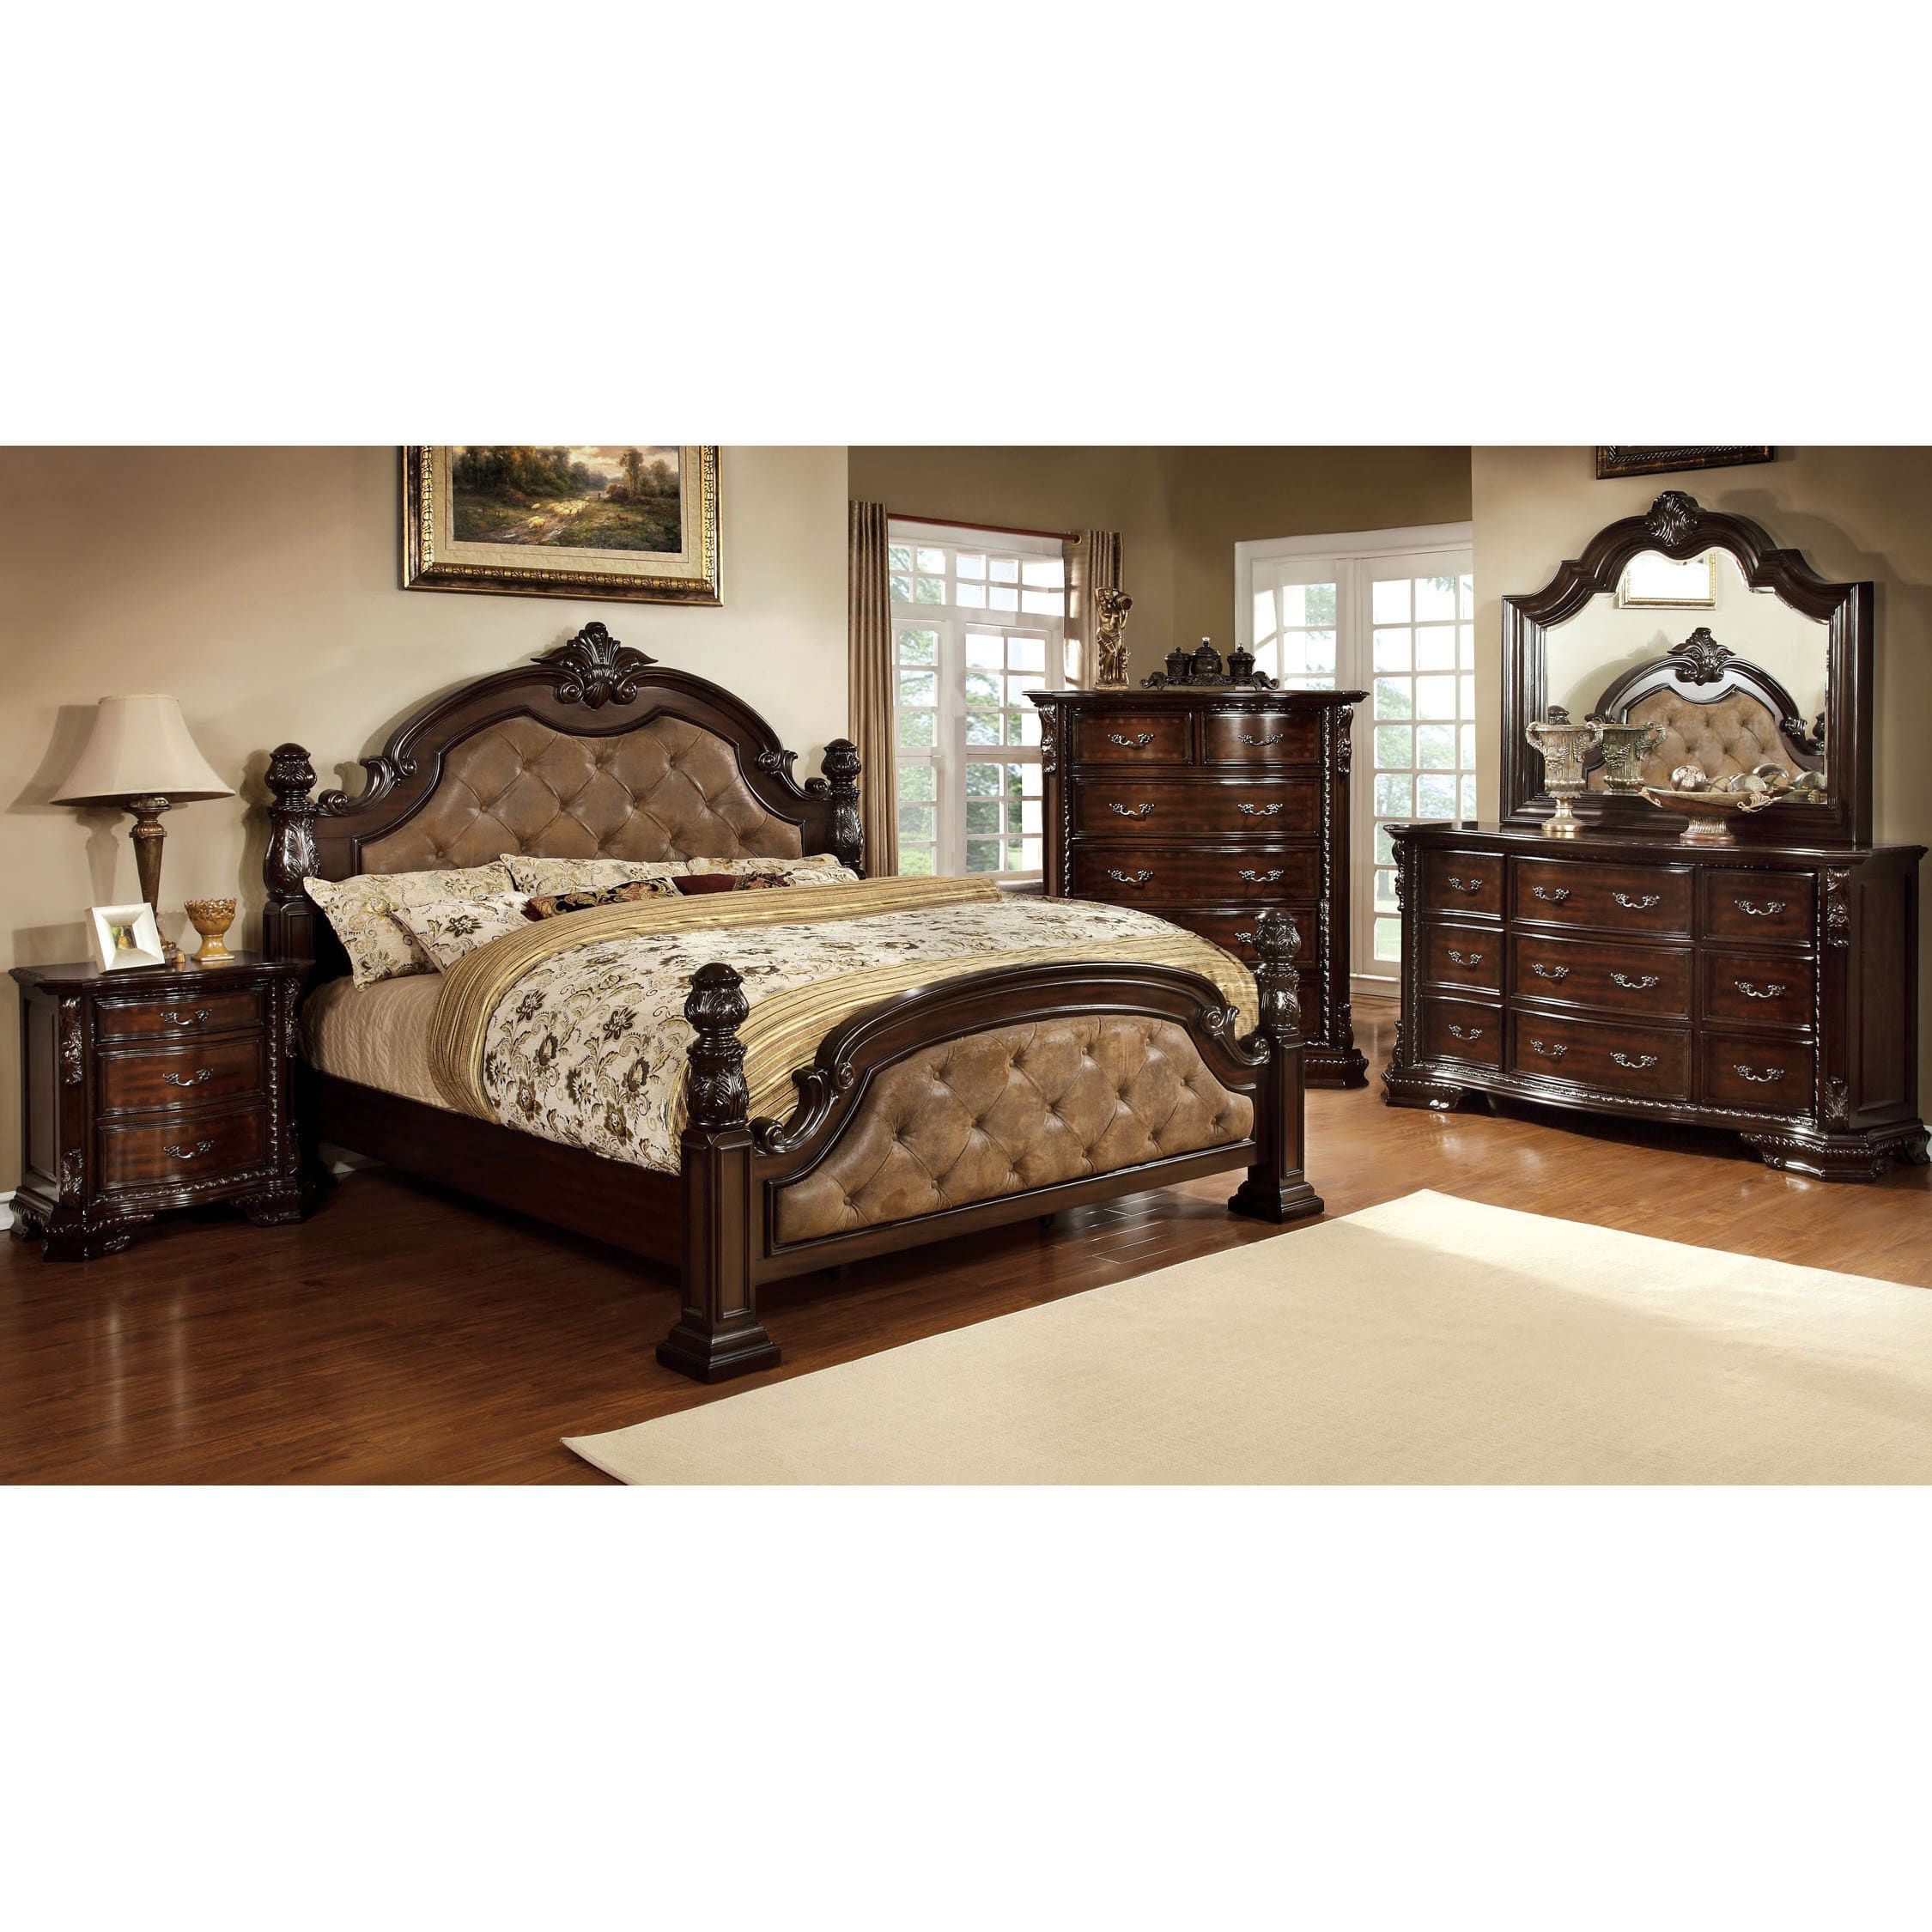 furniture of america kassania luxury 4 piece leatherette bedroom set